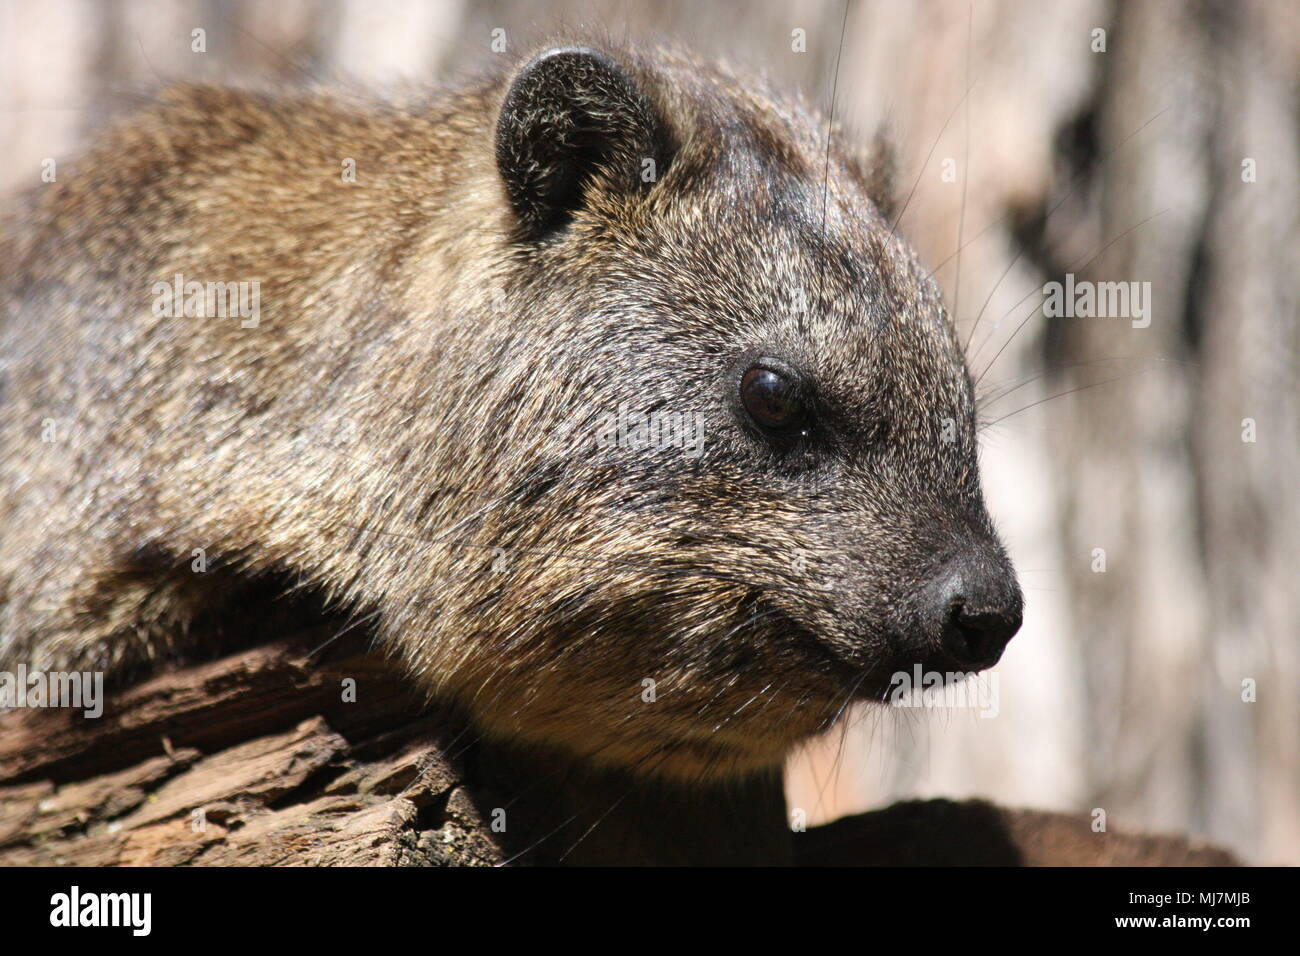 Head shot of a Rock Hyrax Photo Stock